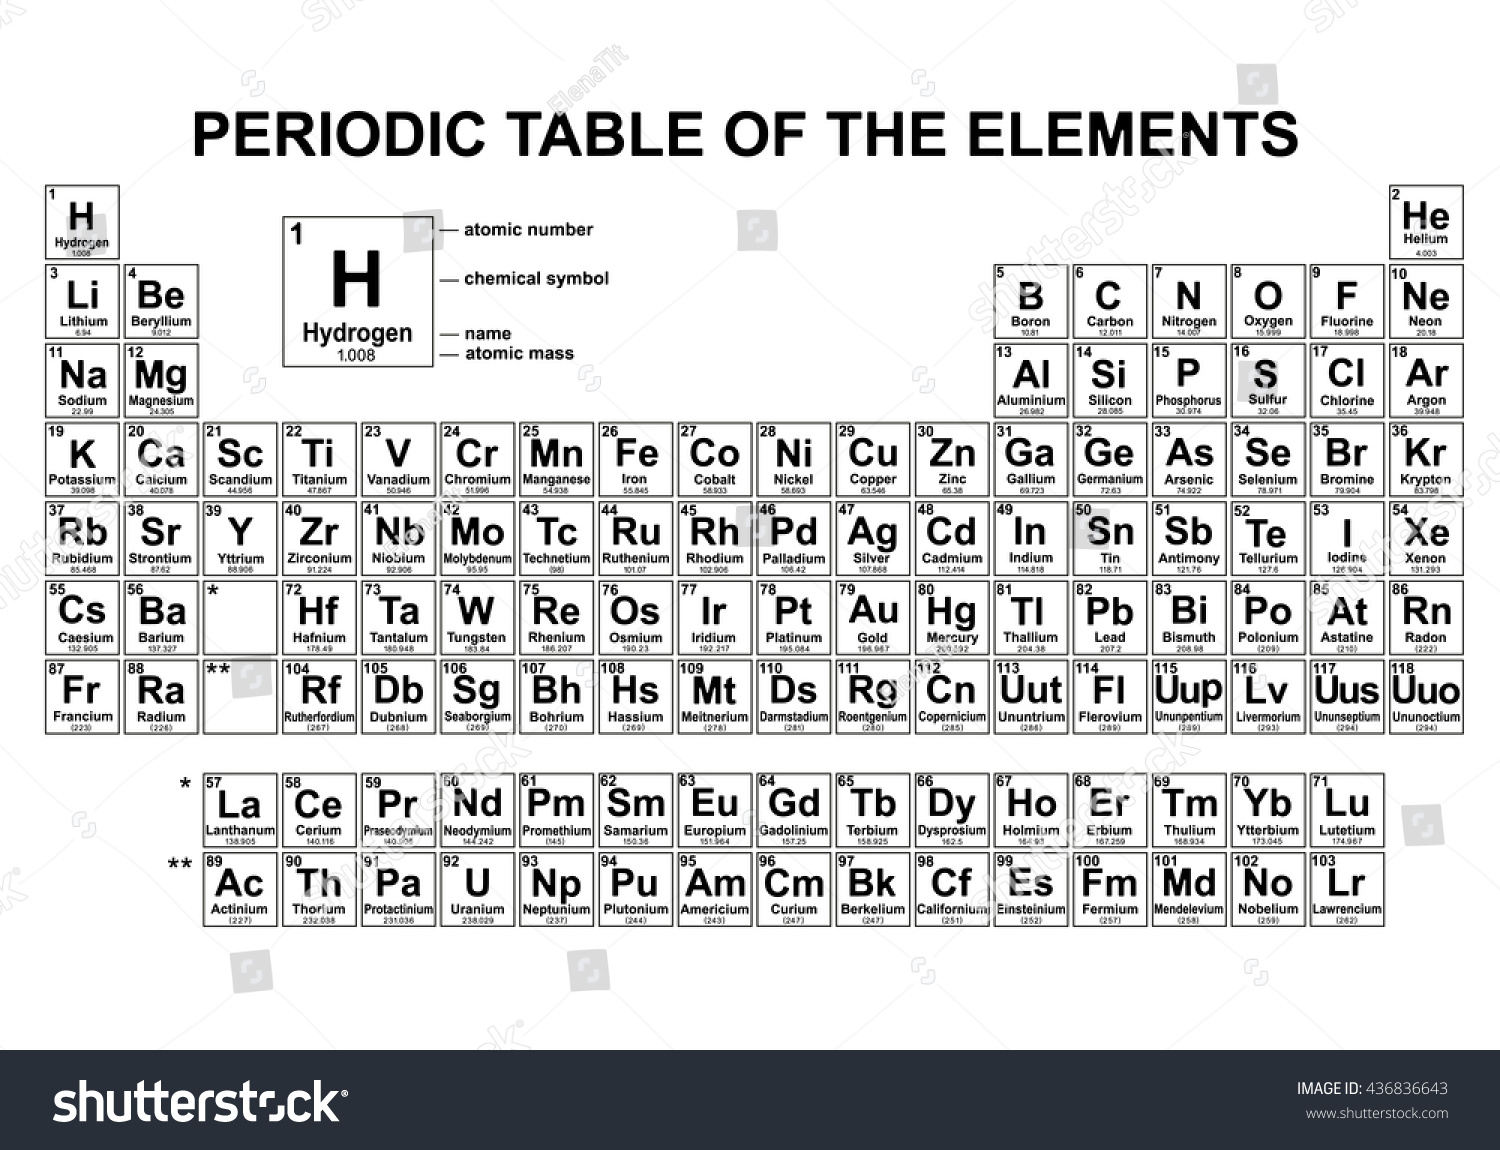 Periodic table of elements with names and symbols pdf gallery periodic table of elements with names and symbols pdf choice image modern periodic table of elements gamestrikefo Images